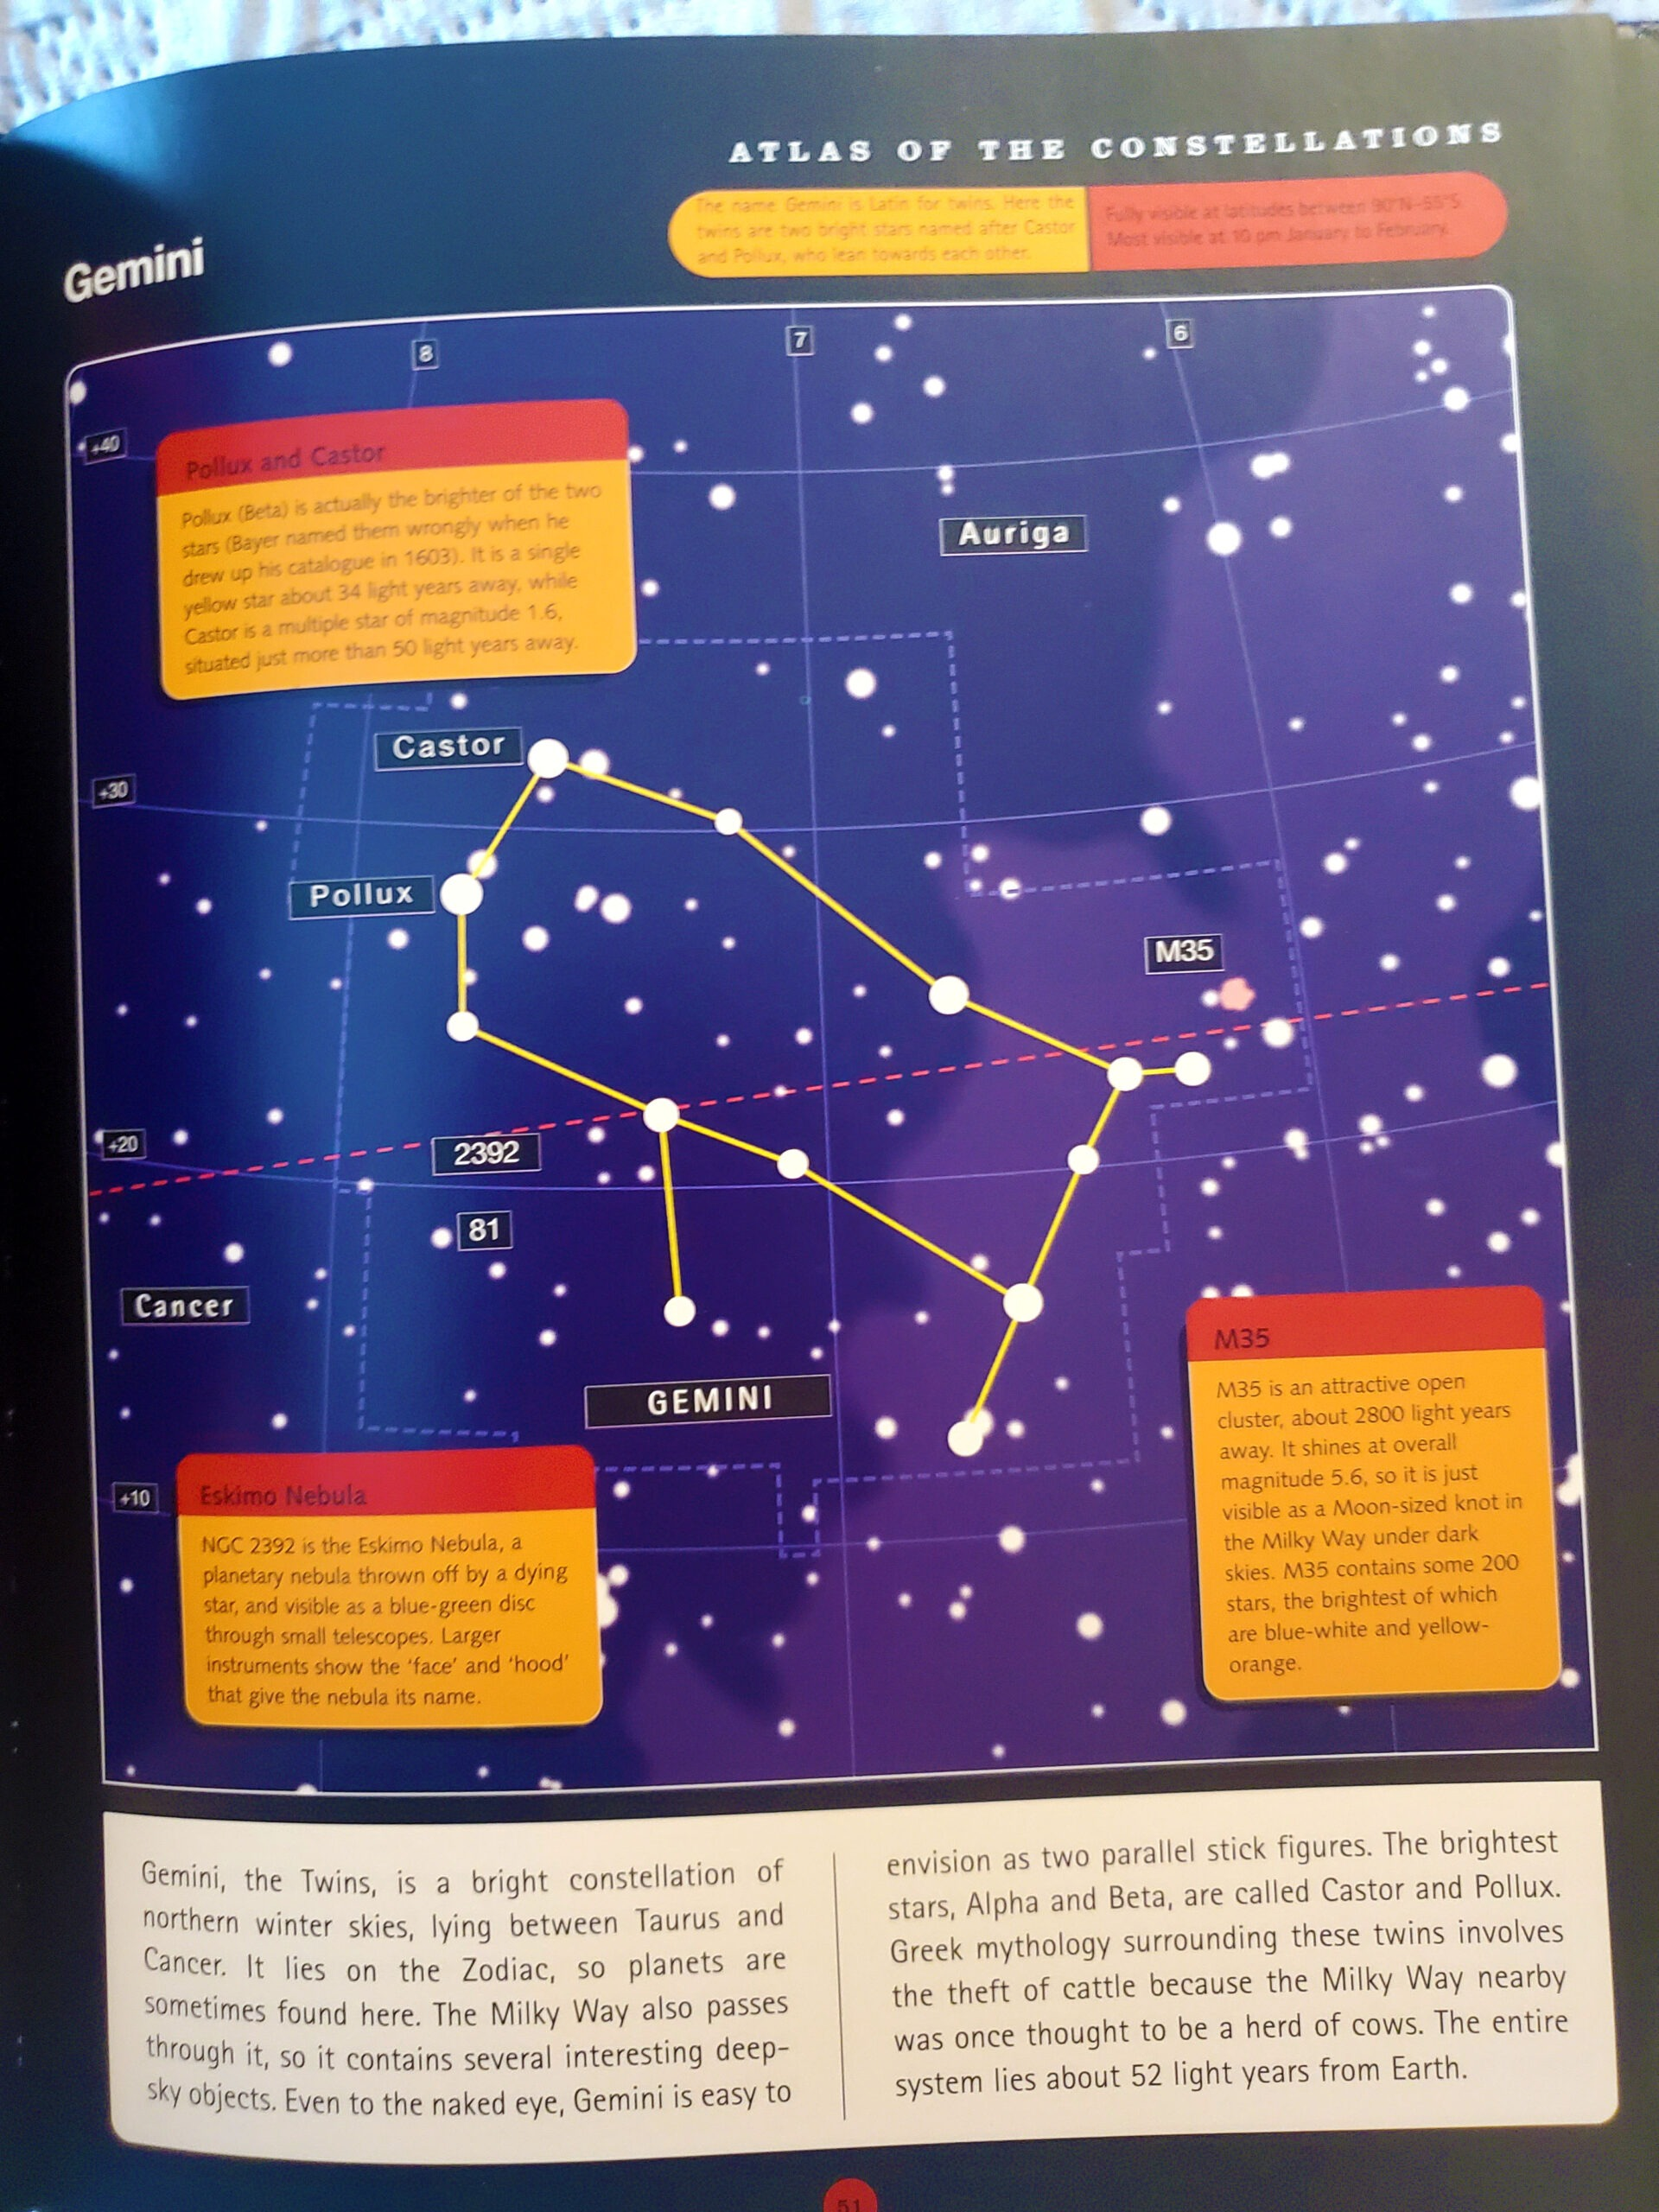 Page from Atlas of the Constellations